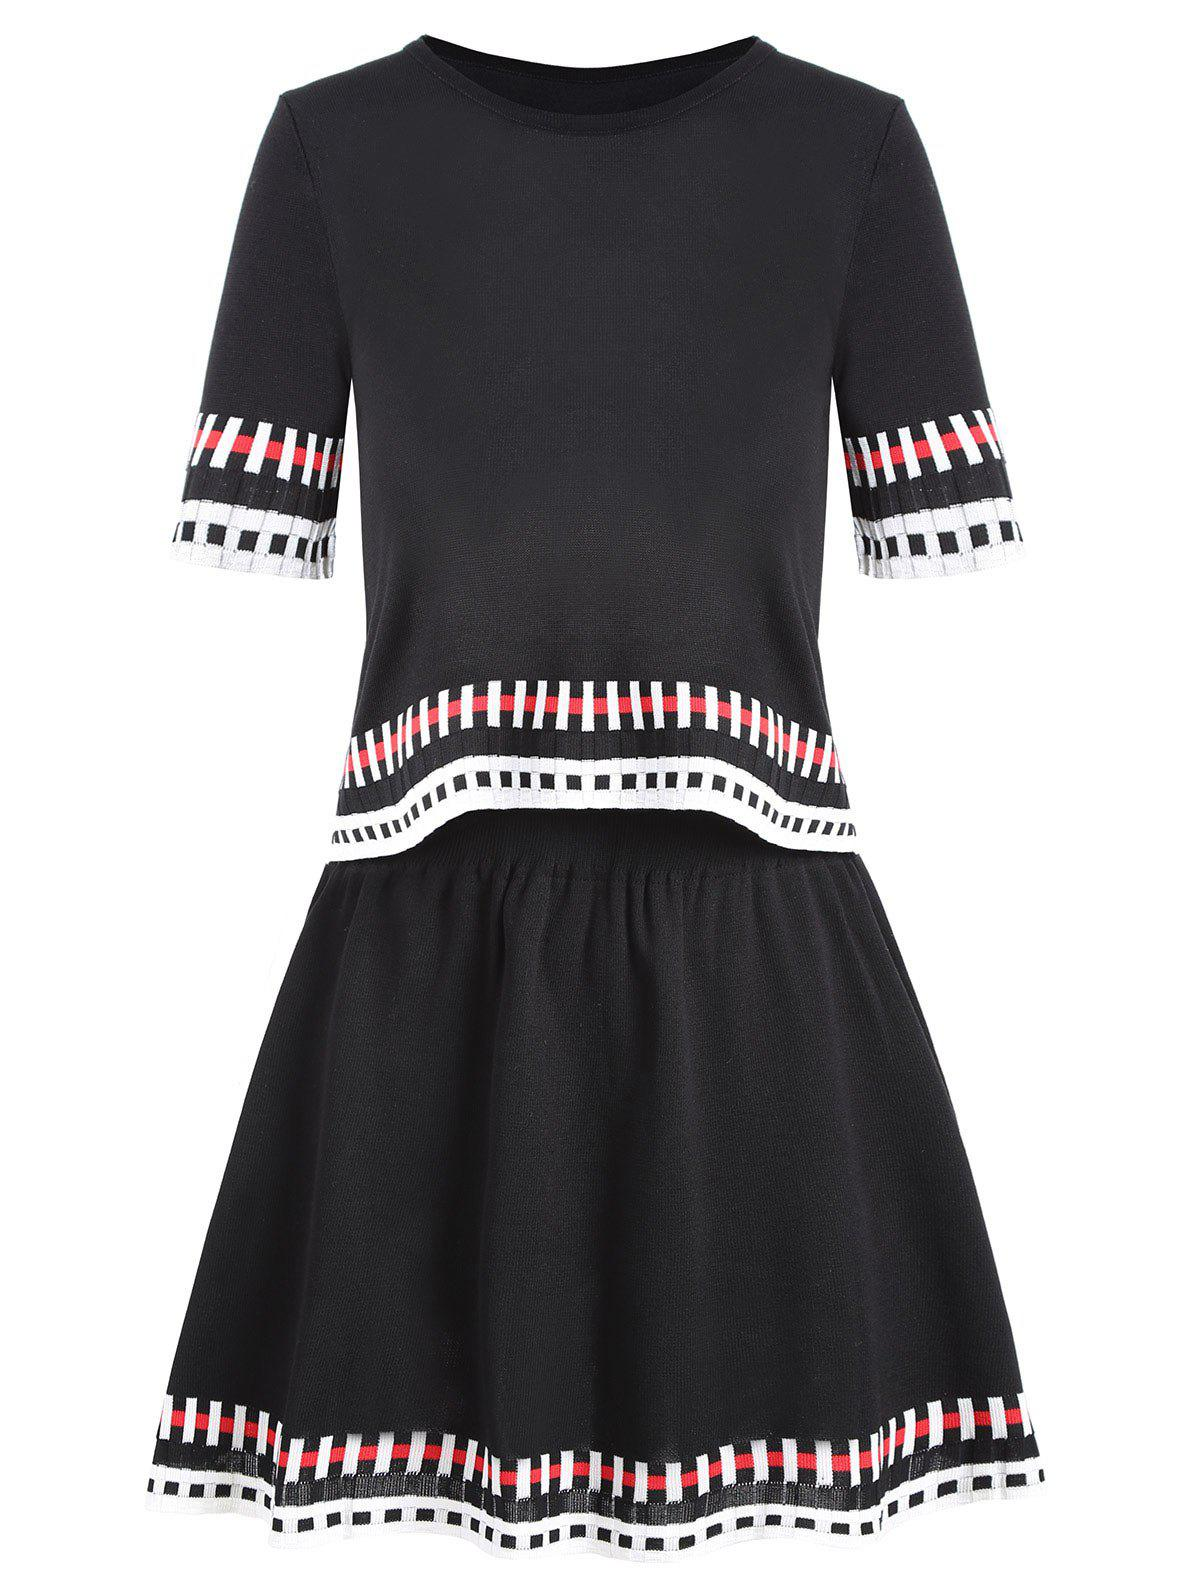 Striped Graphic Knit Two Piece Dress - BLACK ONE SIZE